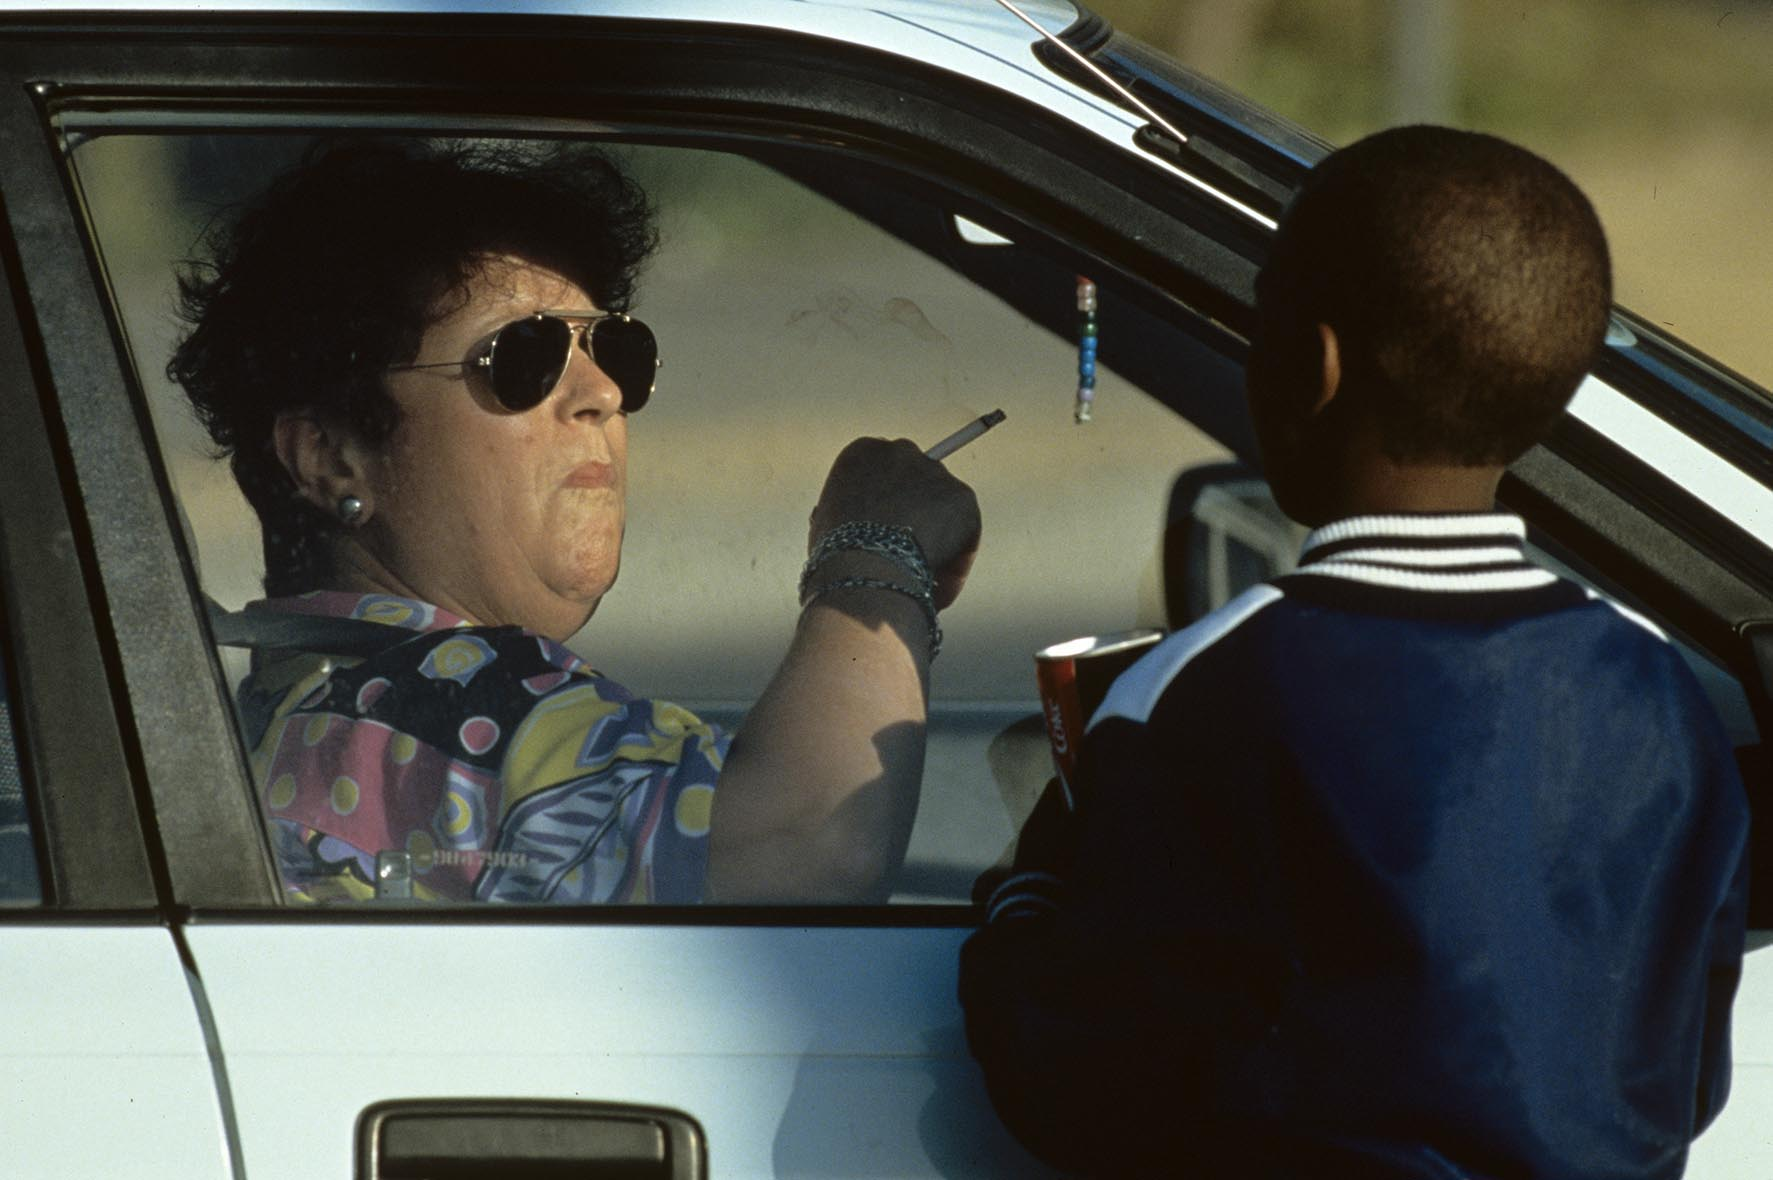 A young child looks for money from a motorist in Cape Town, South Africa.  The disparity between rich and poor is evident in the popular African tourist city.